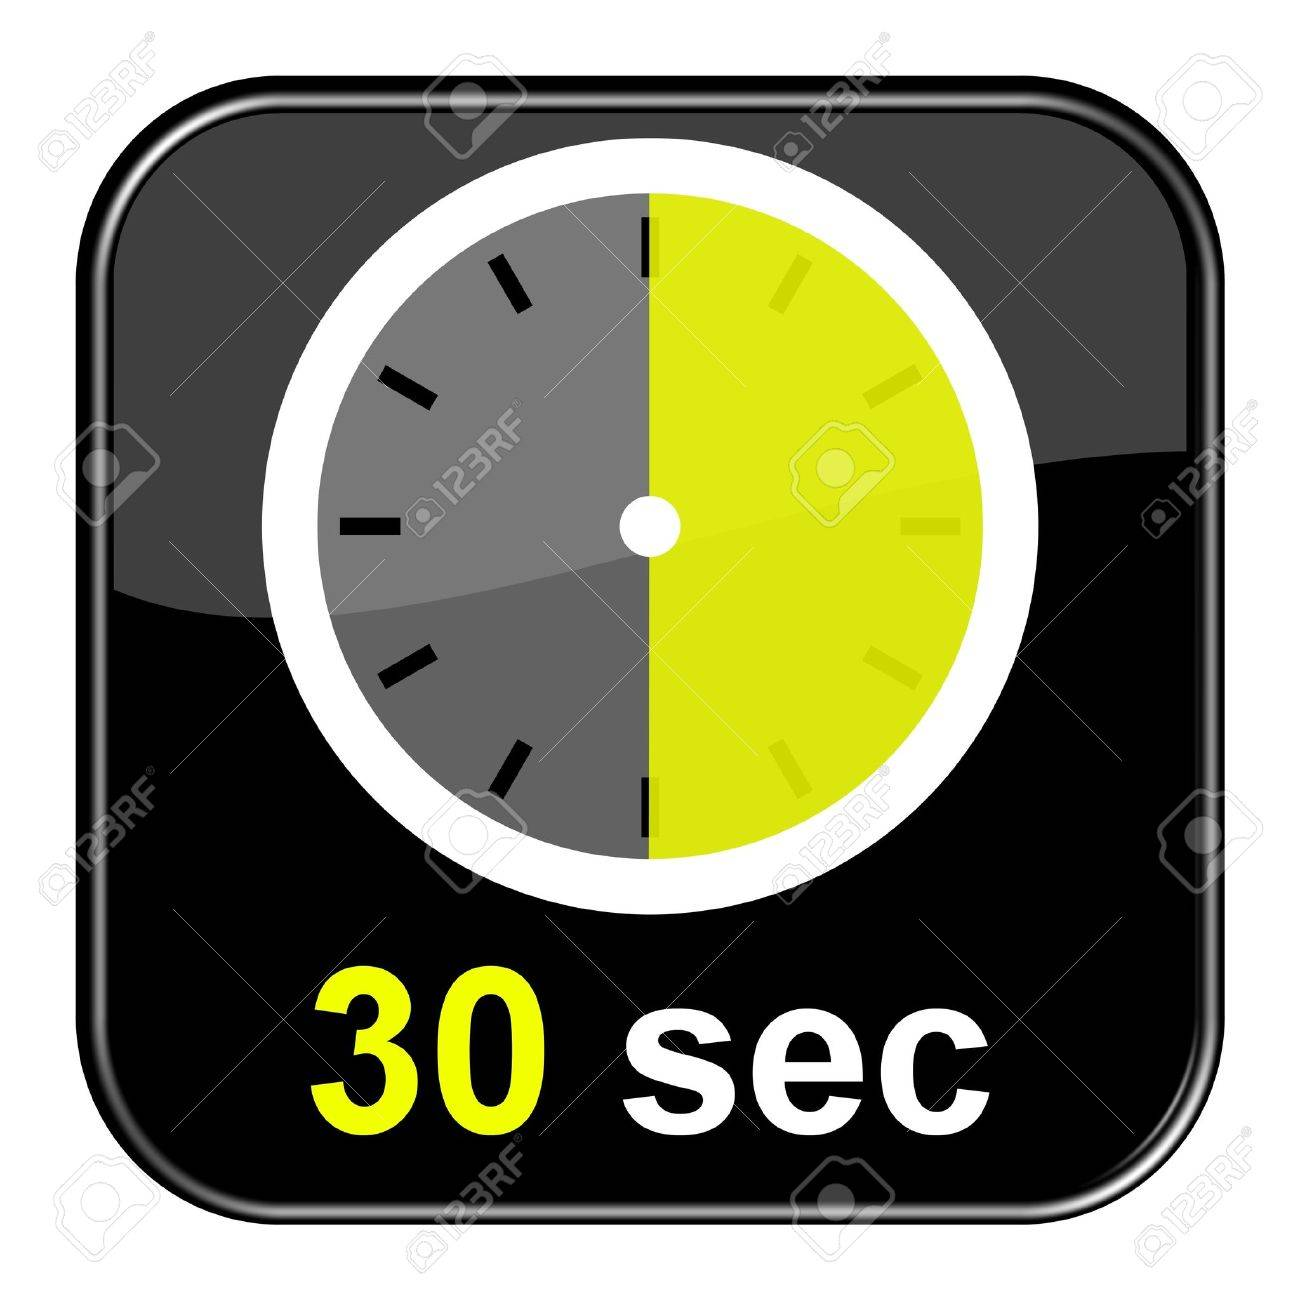 Glossy Button Black - Clock 30sec Stock Photo, Picture And Royalty ...